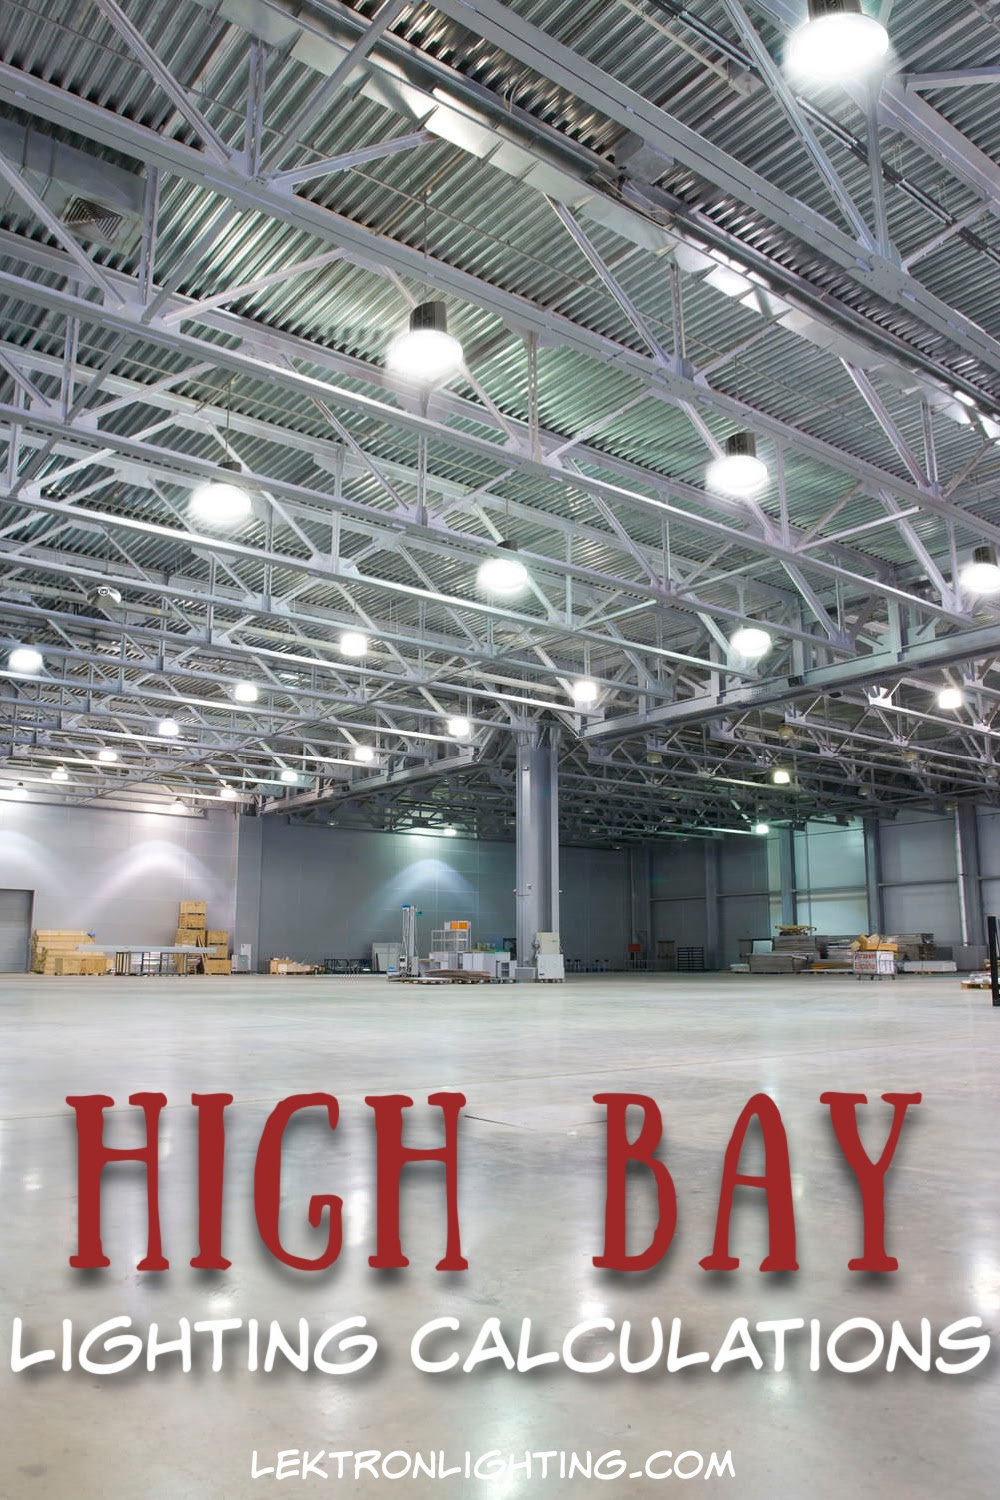 An LED high bay lighting calculator tells you how many fixtures you need and how many lumens are needed to light a space properly.